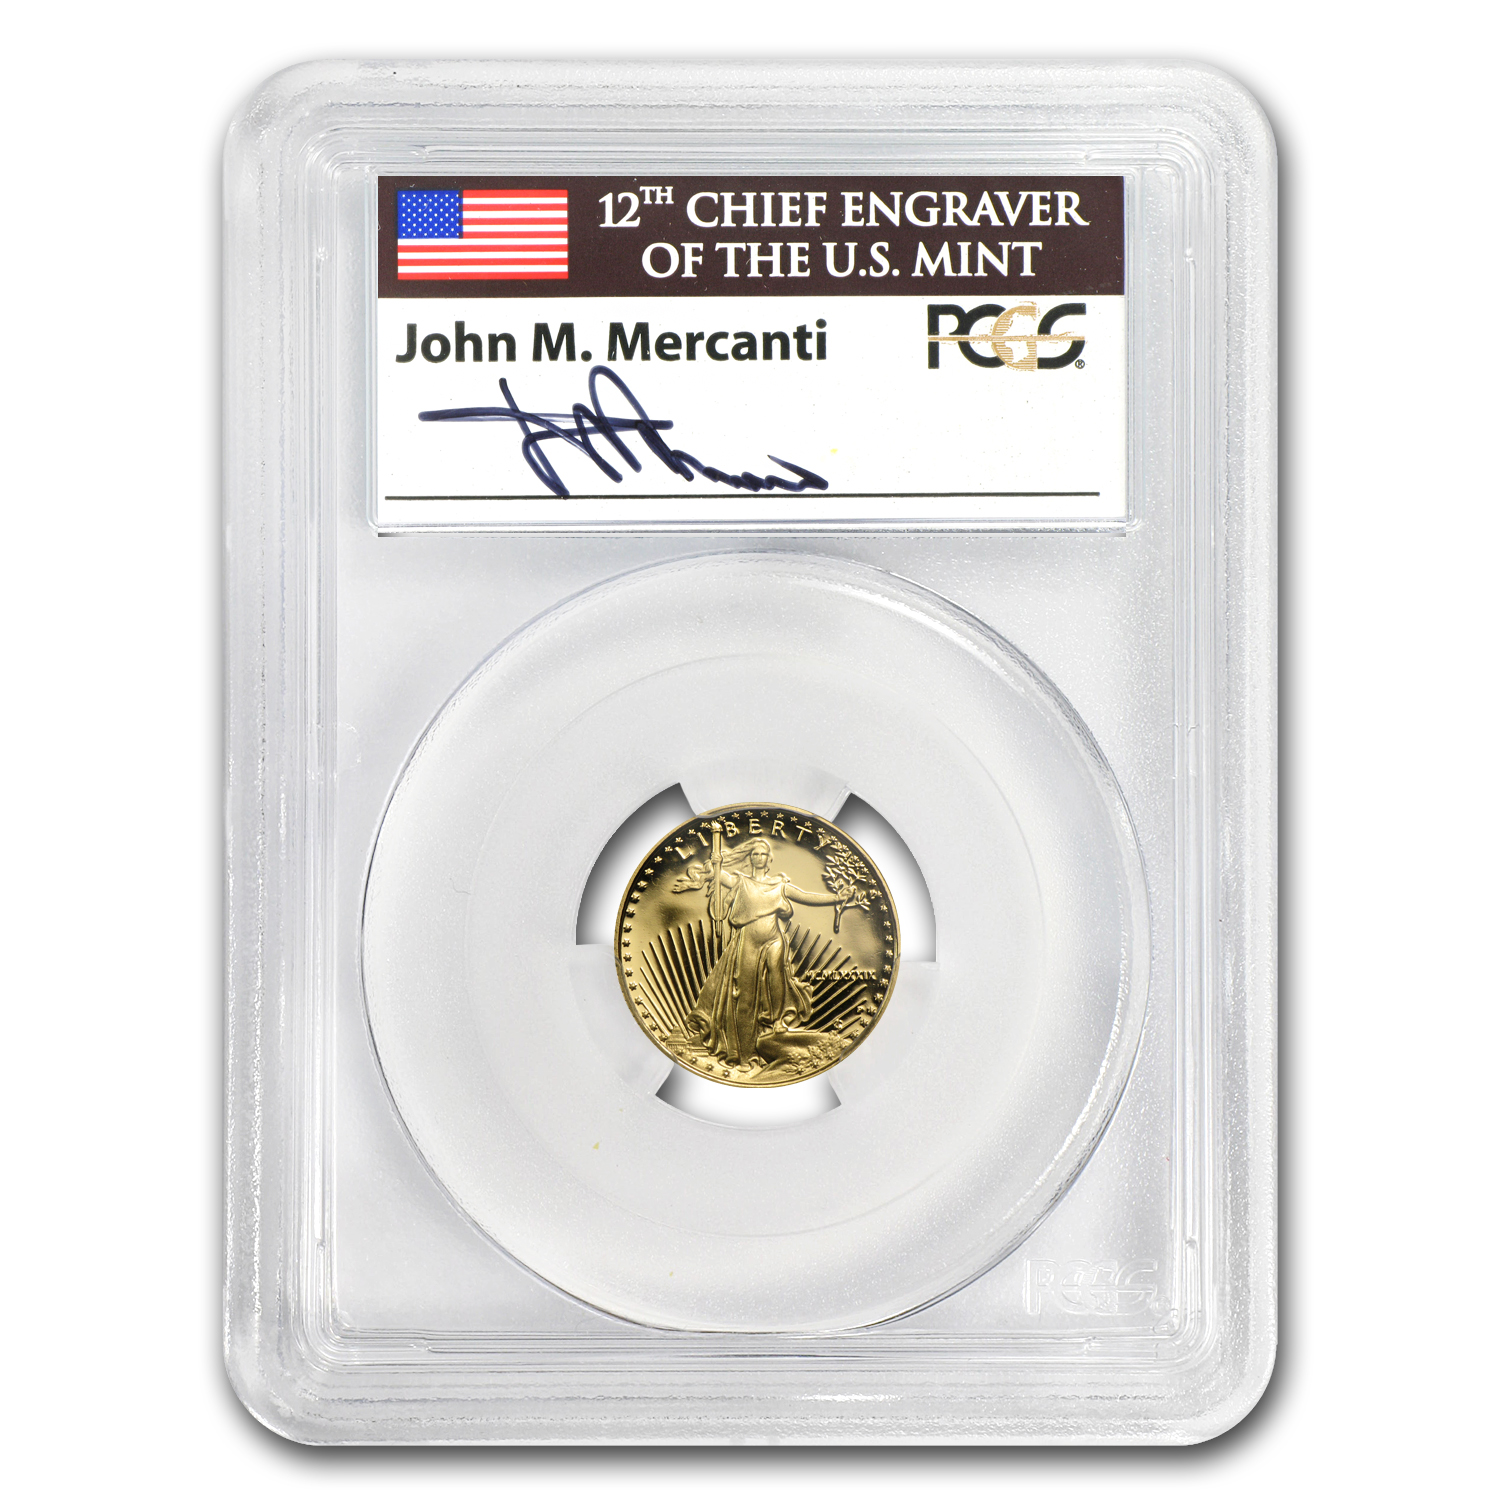 1988 - 2012 1/10 oz Proof Gold Eagle PCGS PR-69 John Mercanti Set